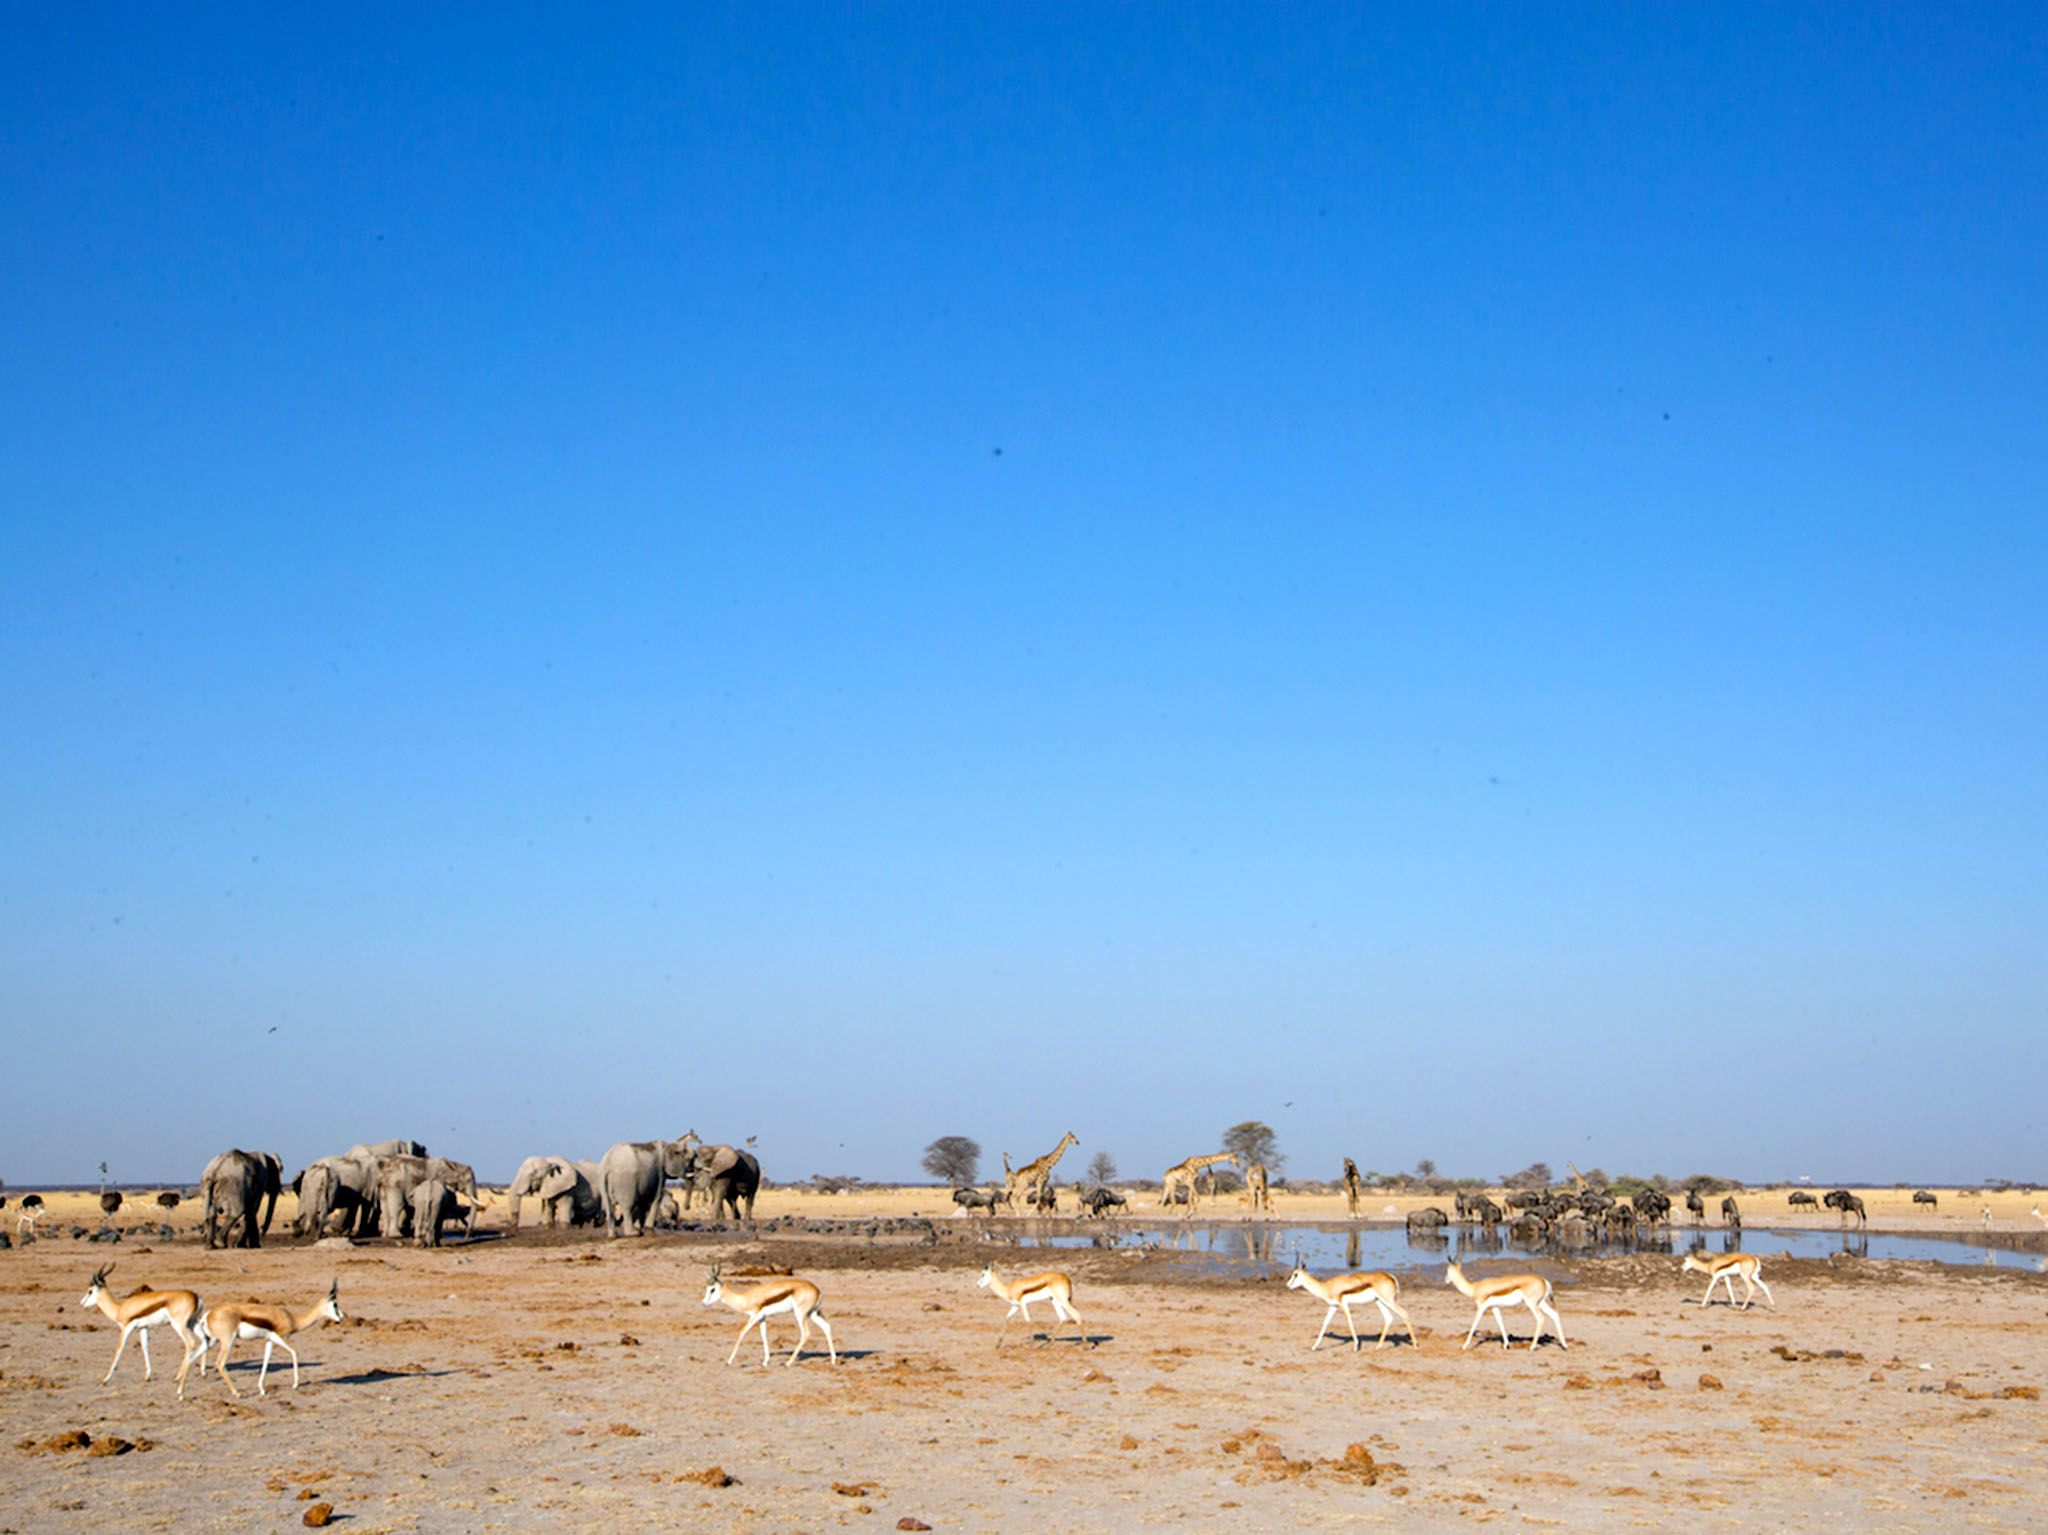 Nxai Pan, Botswana:  Shrinking waterhole surrounded by springbok  elephant herd in middle... [Foto del giorno - novembre 2017]